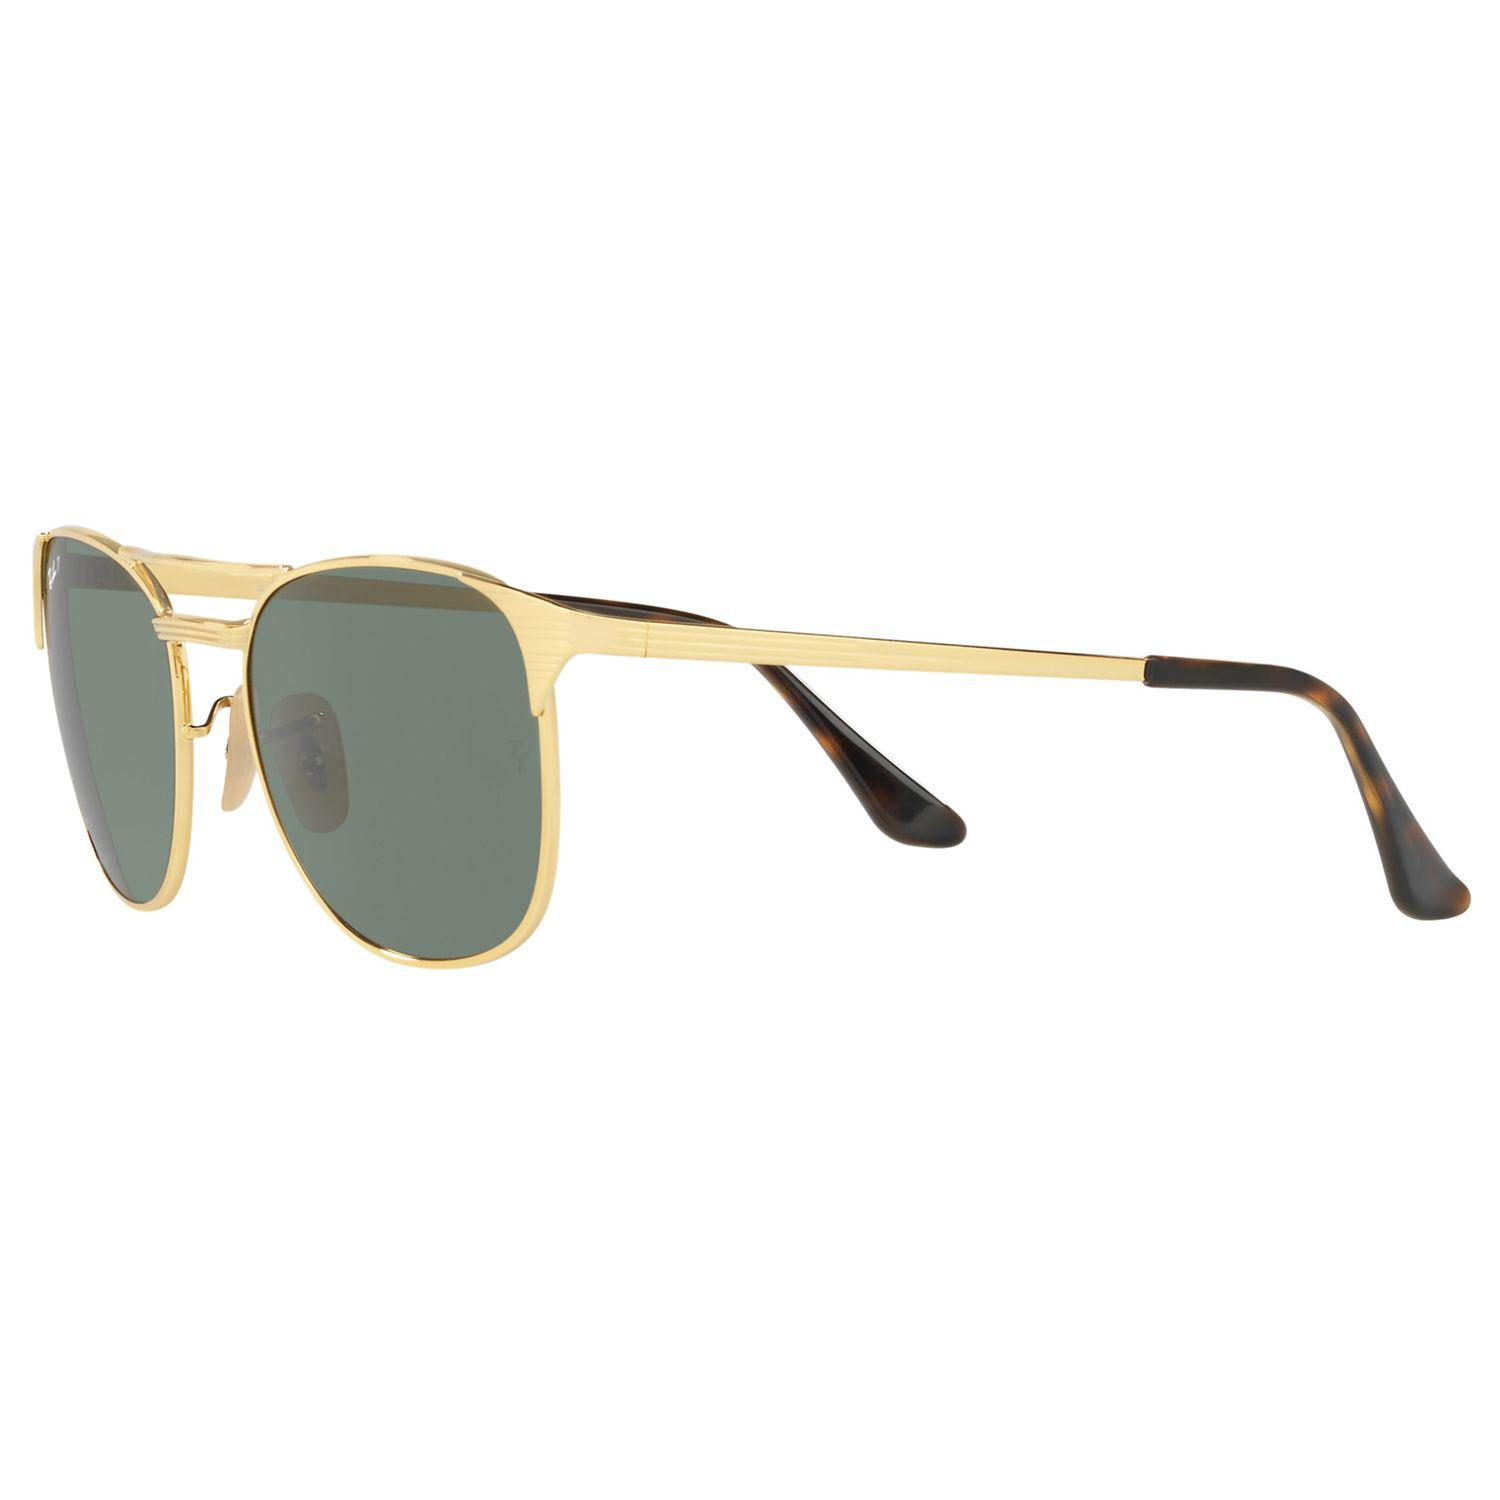 Ray-Ban Rb3429m Polarised Square Sunglasses in Gold/Dark Green (Green) for Men